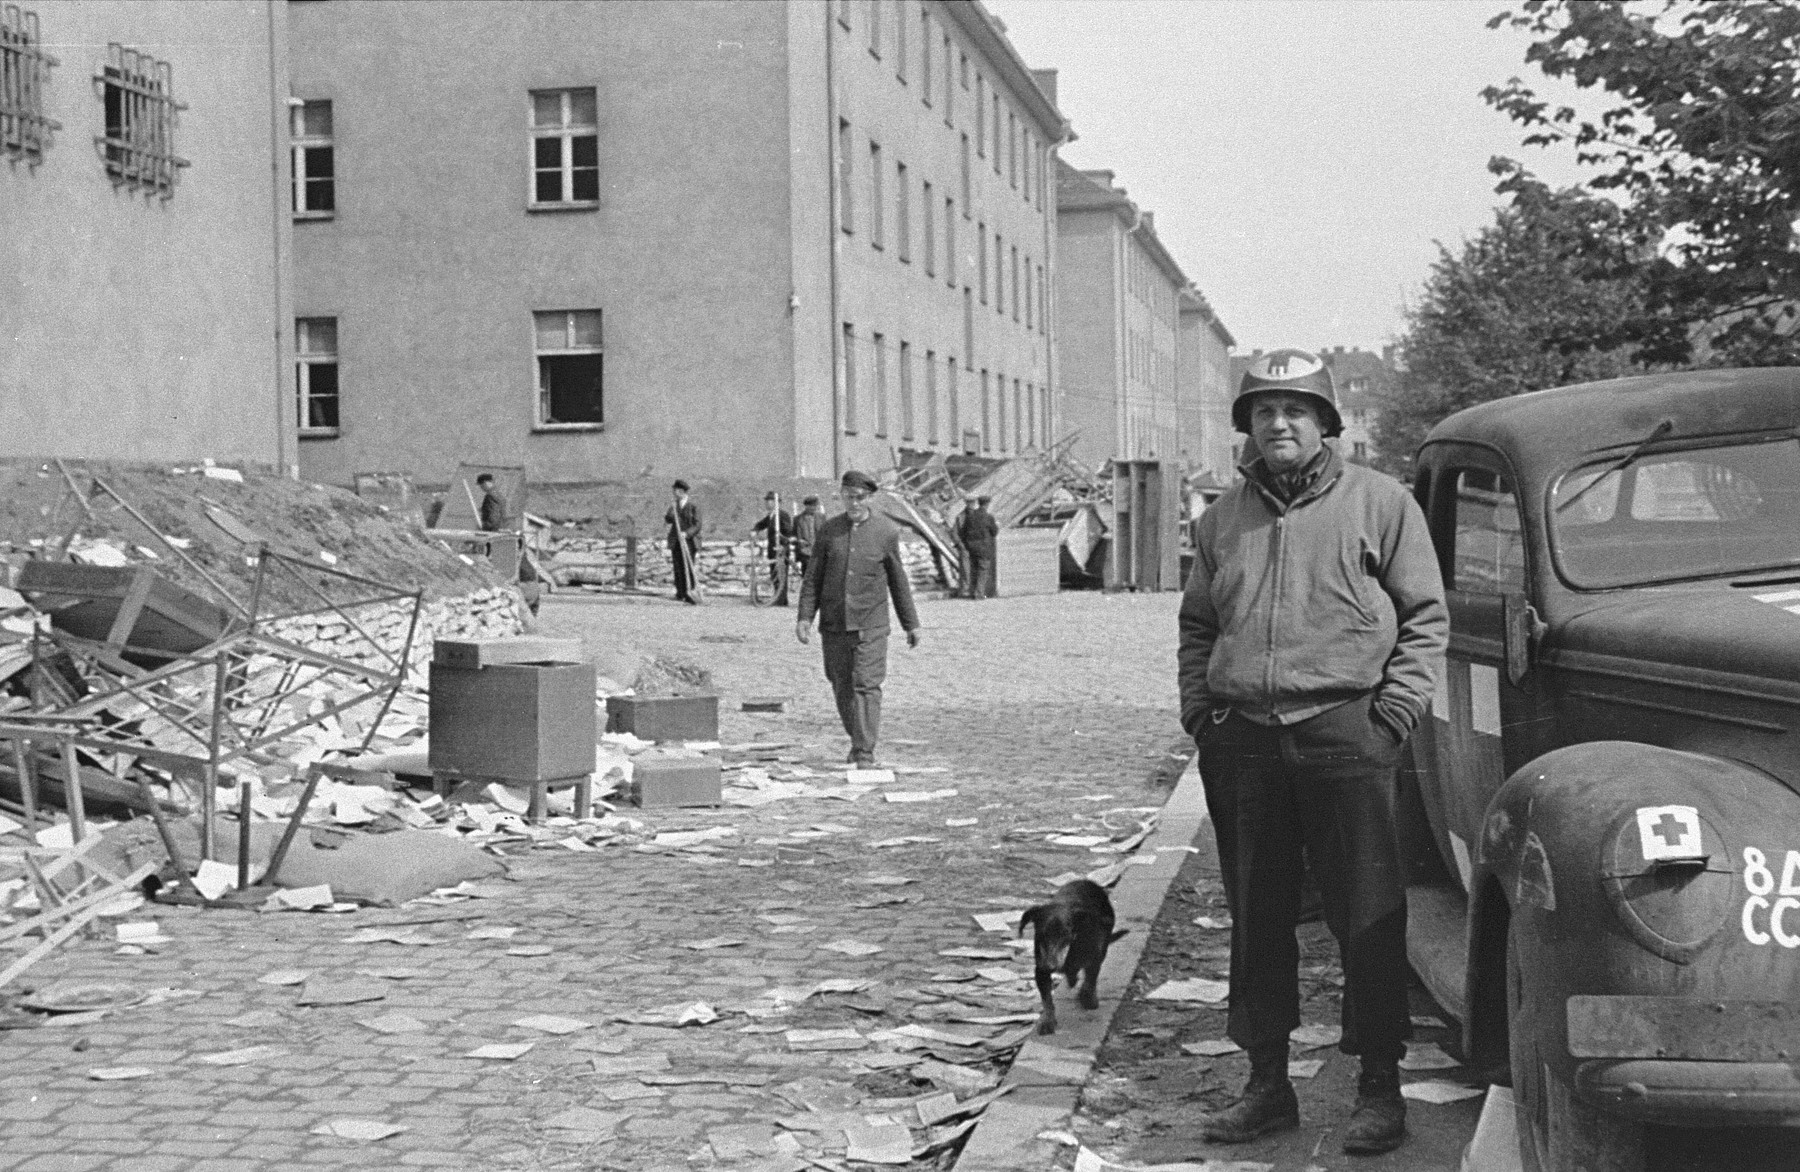 An American medical officer stands in front of a school that has been converted into a hospital for concentration camp survivors from Langenstein-Zwieberge.